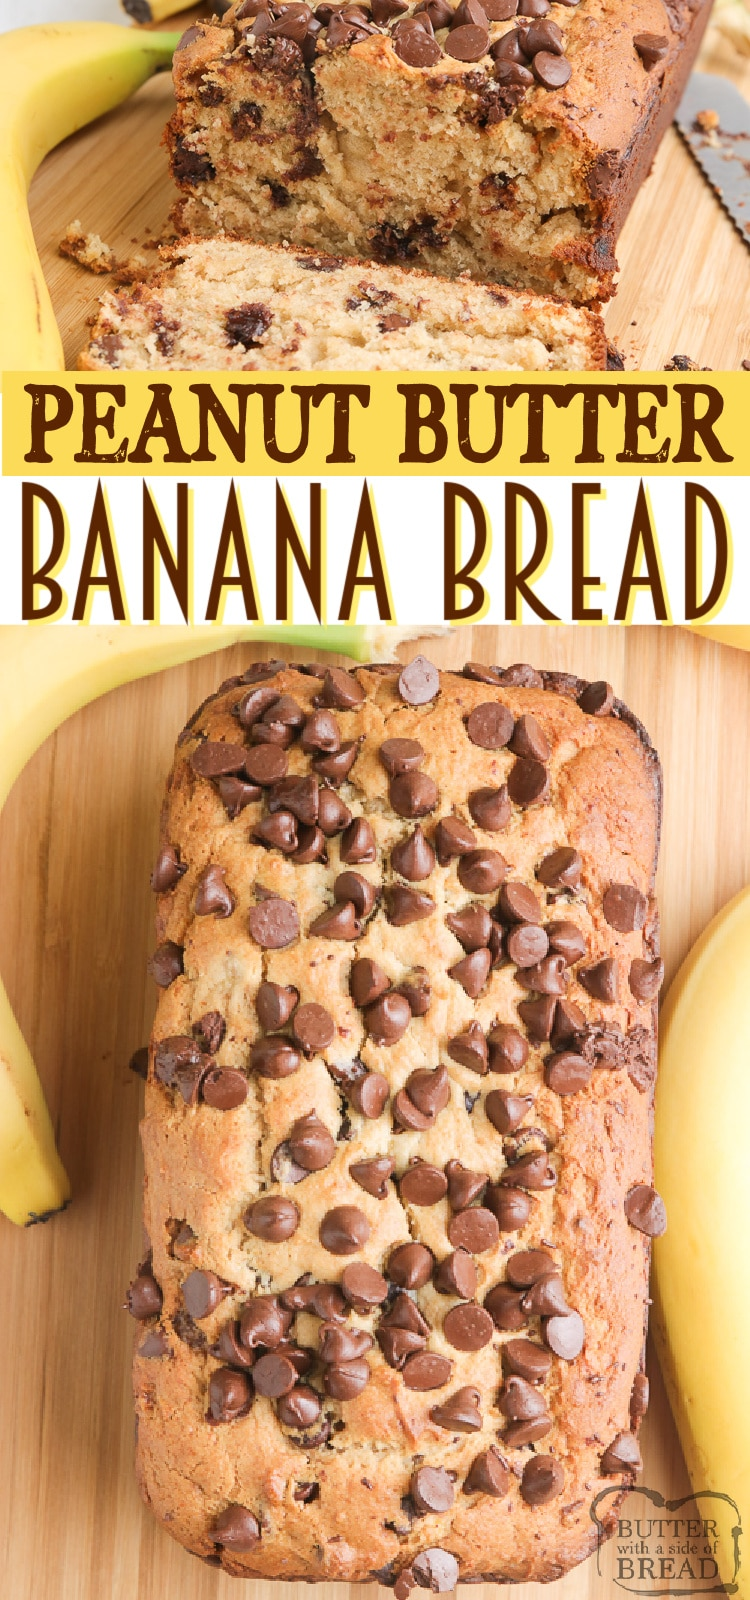 Peanut Butter Banana Bread made with ripe bananas, peanut butter, and chocolate chips! A delicious variation on the classic banana bread recipe.